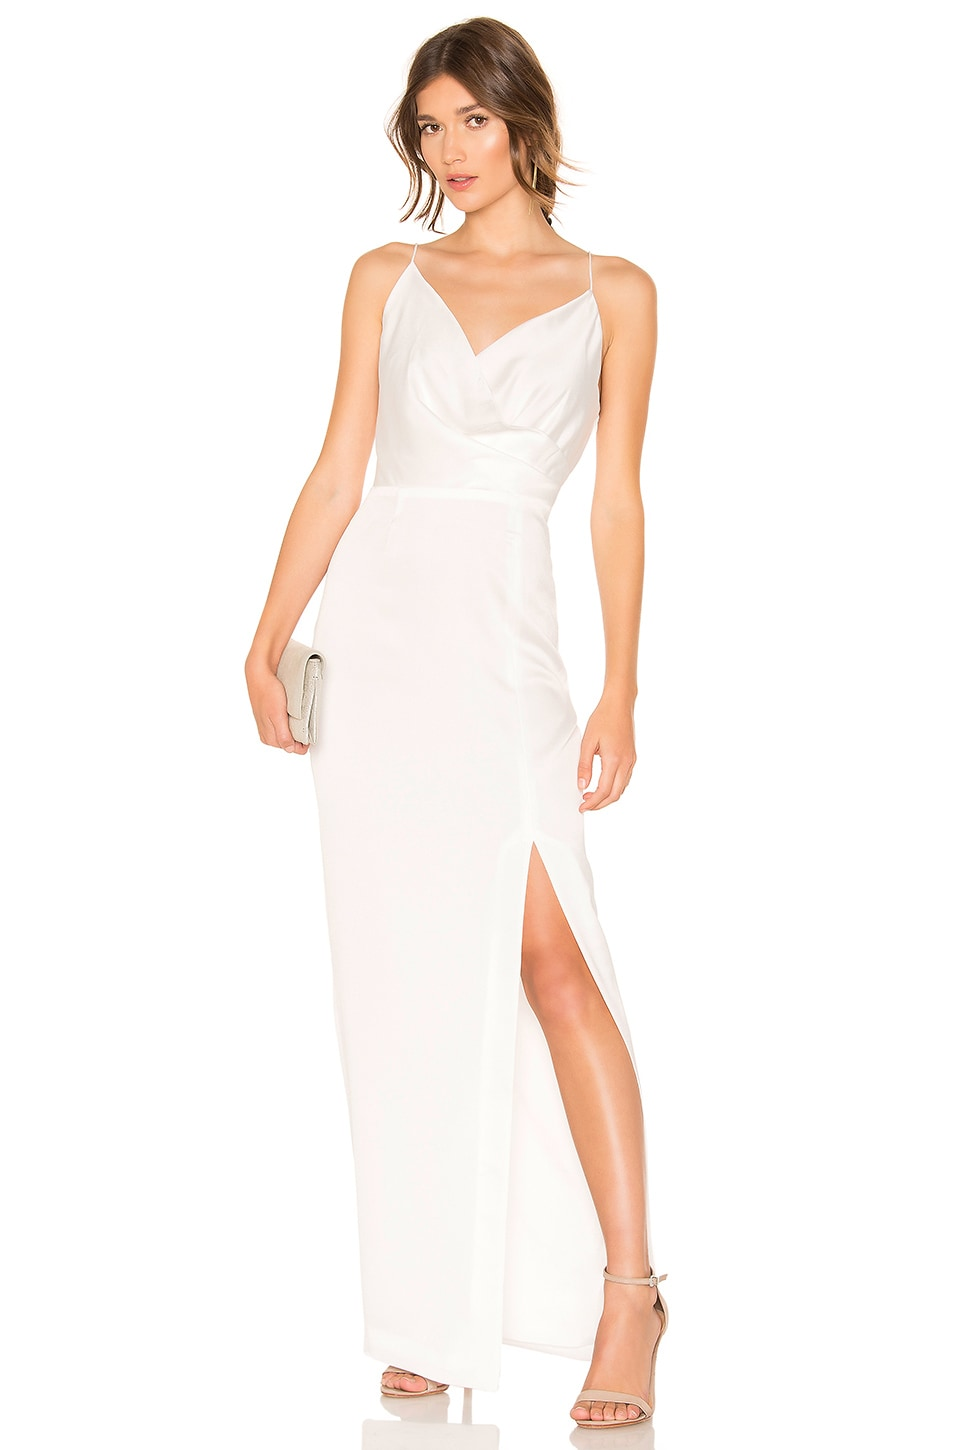 keepsake This Moment Gown in Ivory